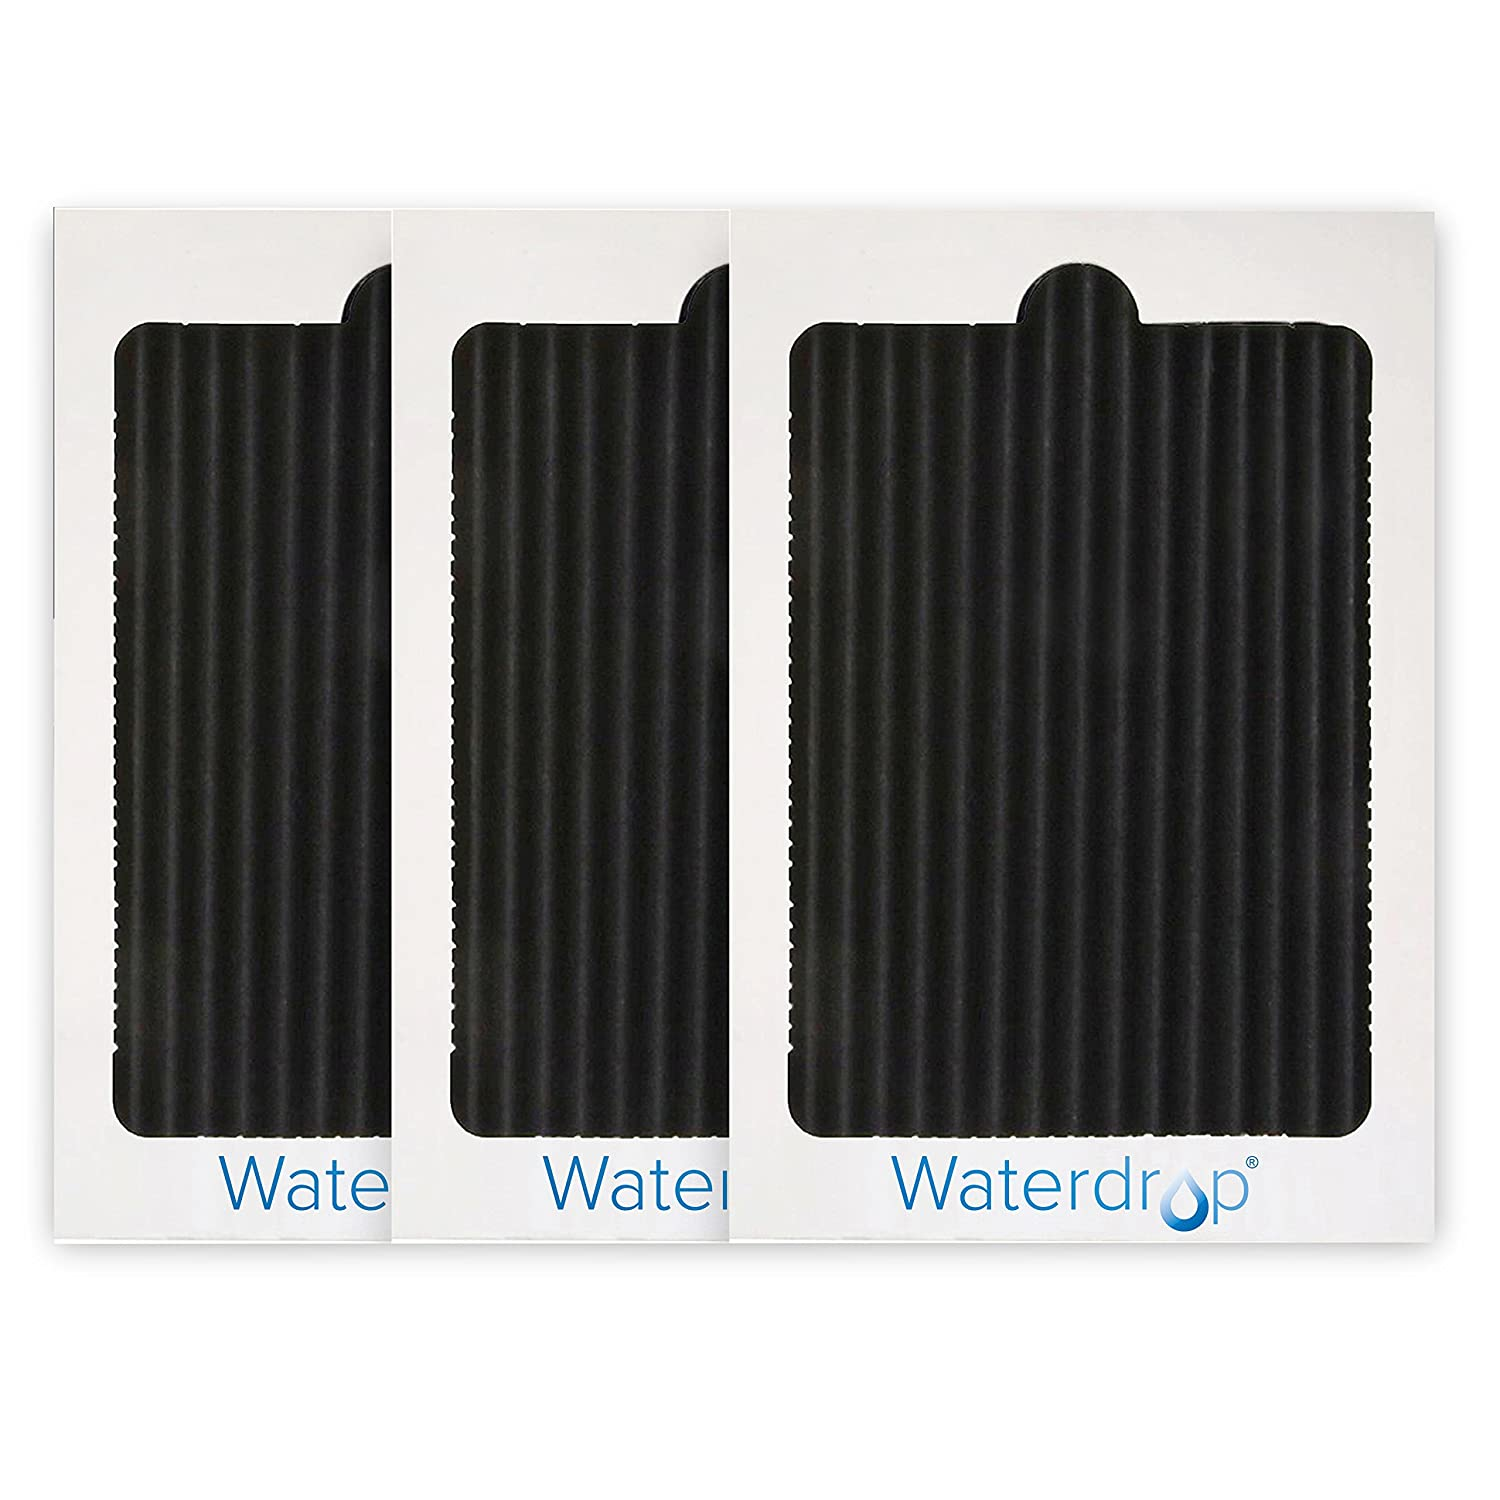 Waterdrop Replacement Refrigerator Air Filter, Compatible with EAFCBF, PAULTRA, SCPUREAIR2PK, 242047801, 242061001, 241754001, 3 Pack, Package May Vary